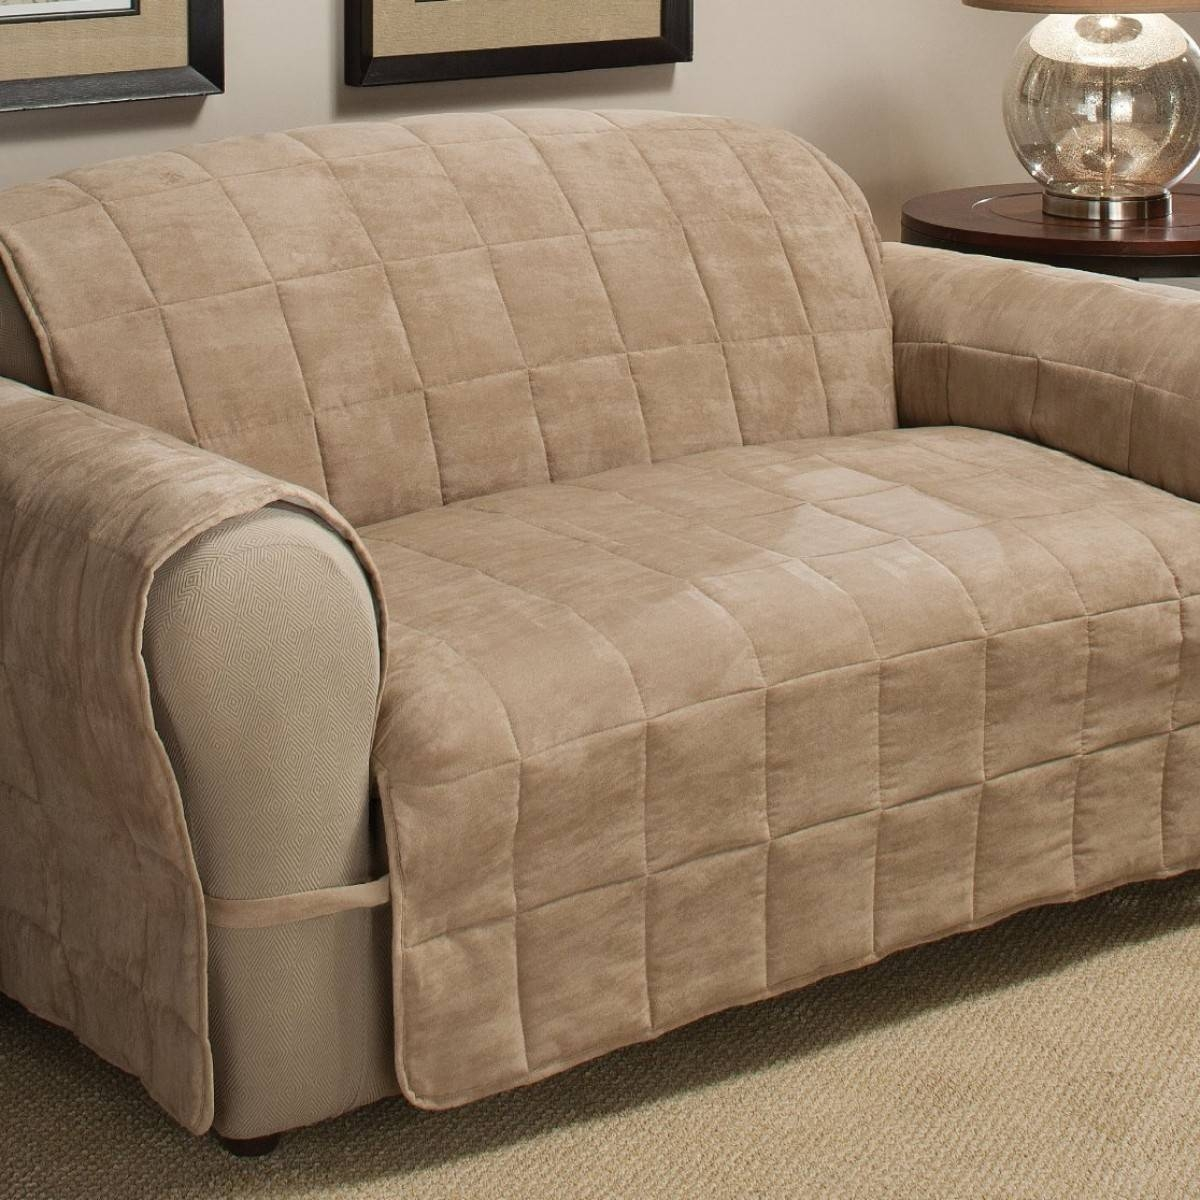 Decorating: Using Gorgeous Sofa Covers Walmart For Chic Furniture intended for Camo Sofa Cover (Image 7 of 30)